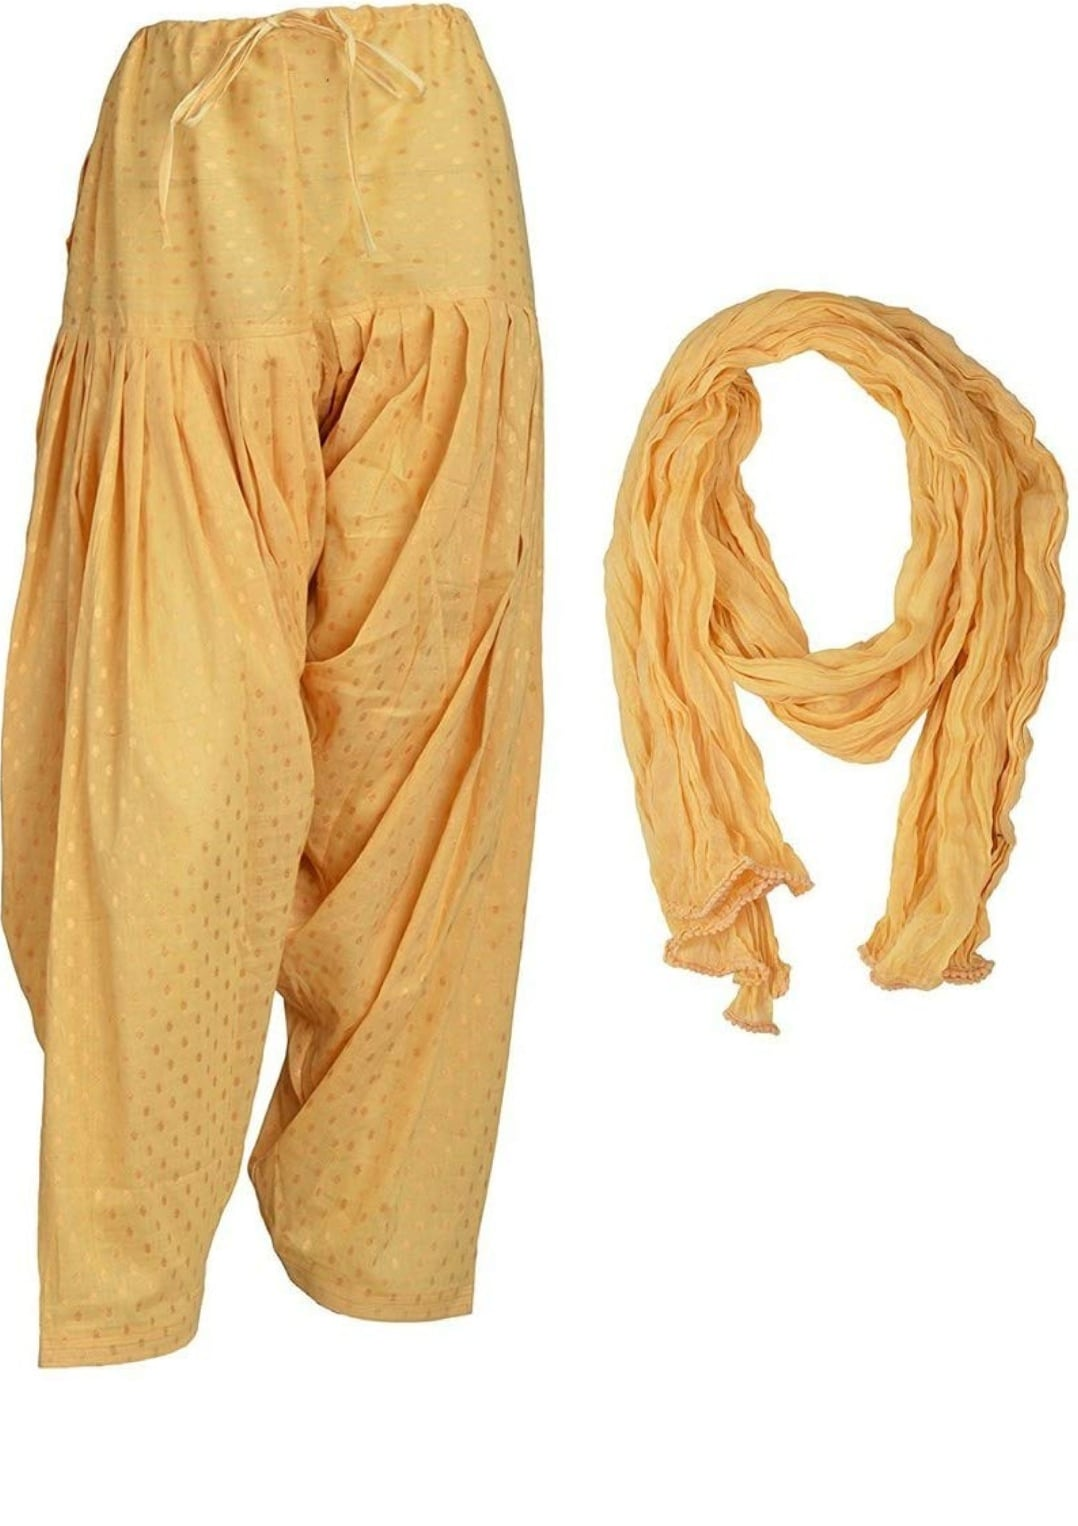 Samridhi Collections Combo Of Women's Cotton Patiala And Dupptta Golden Booti Work (Skin)